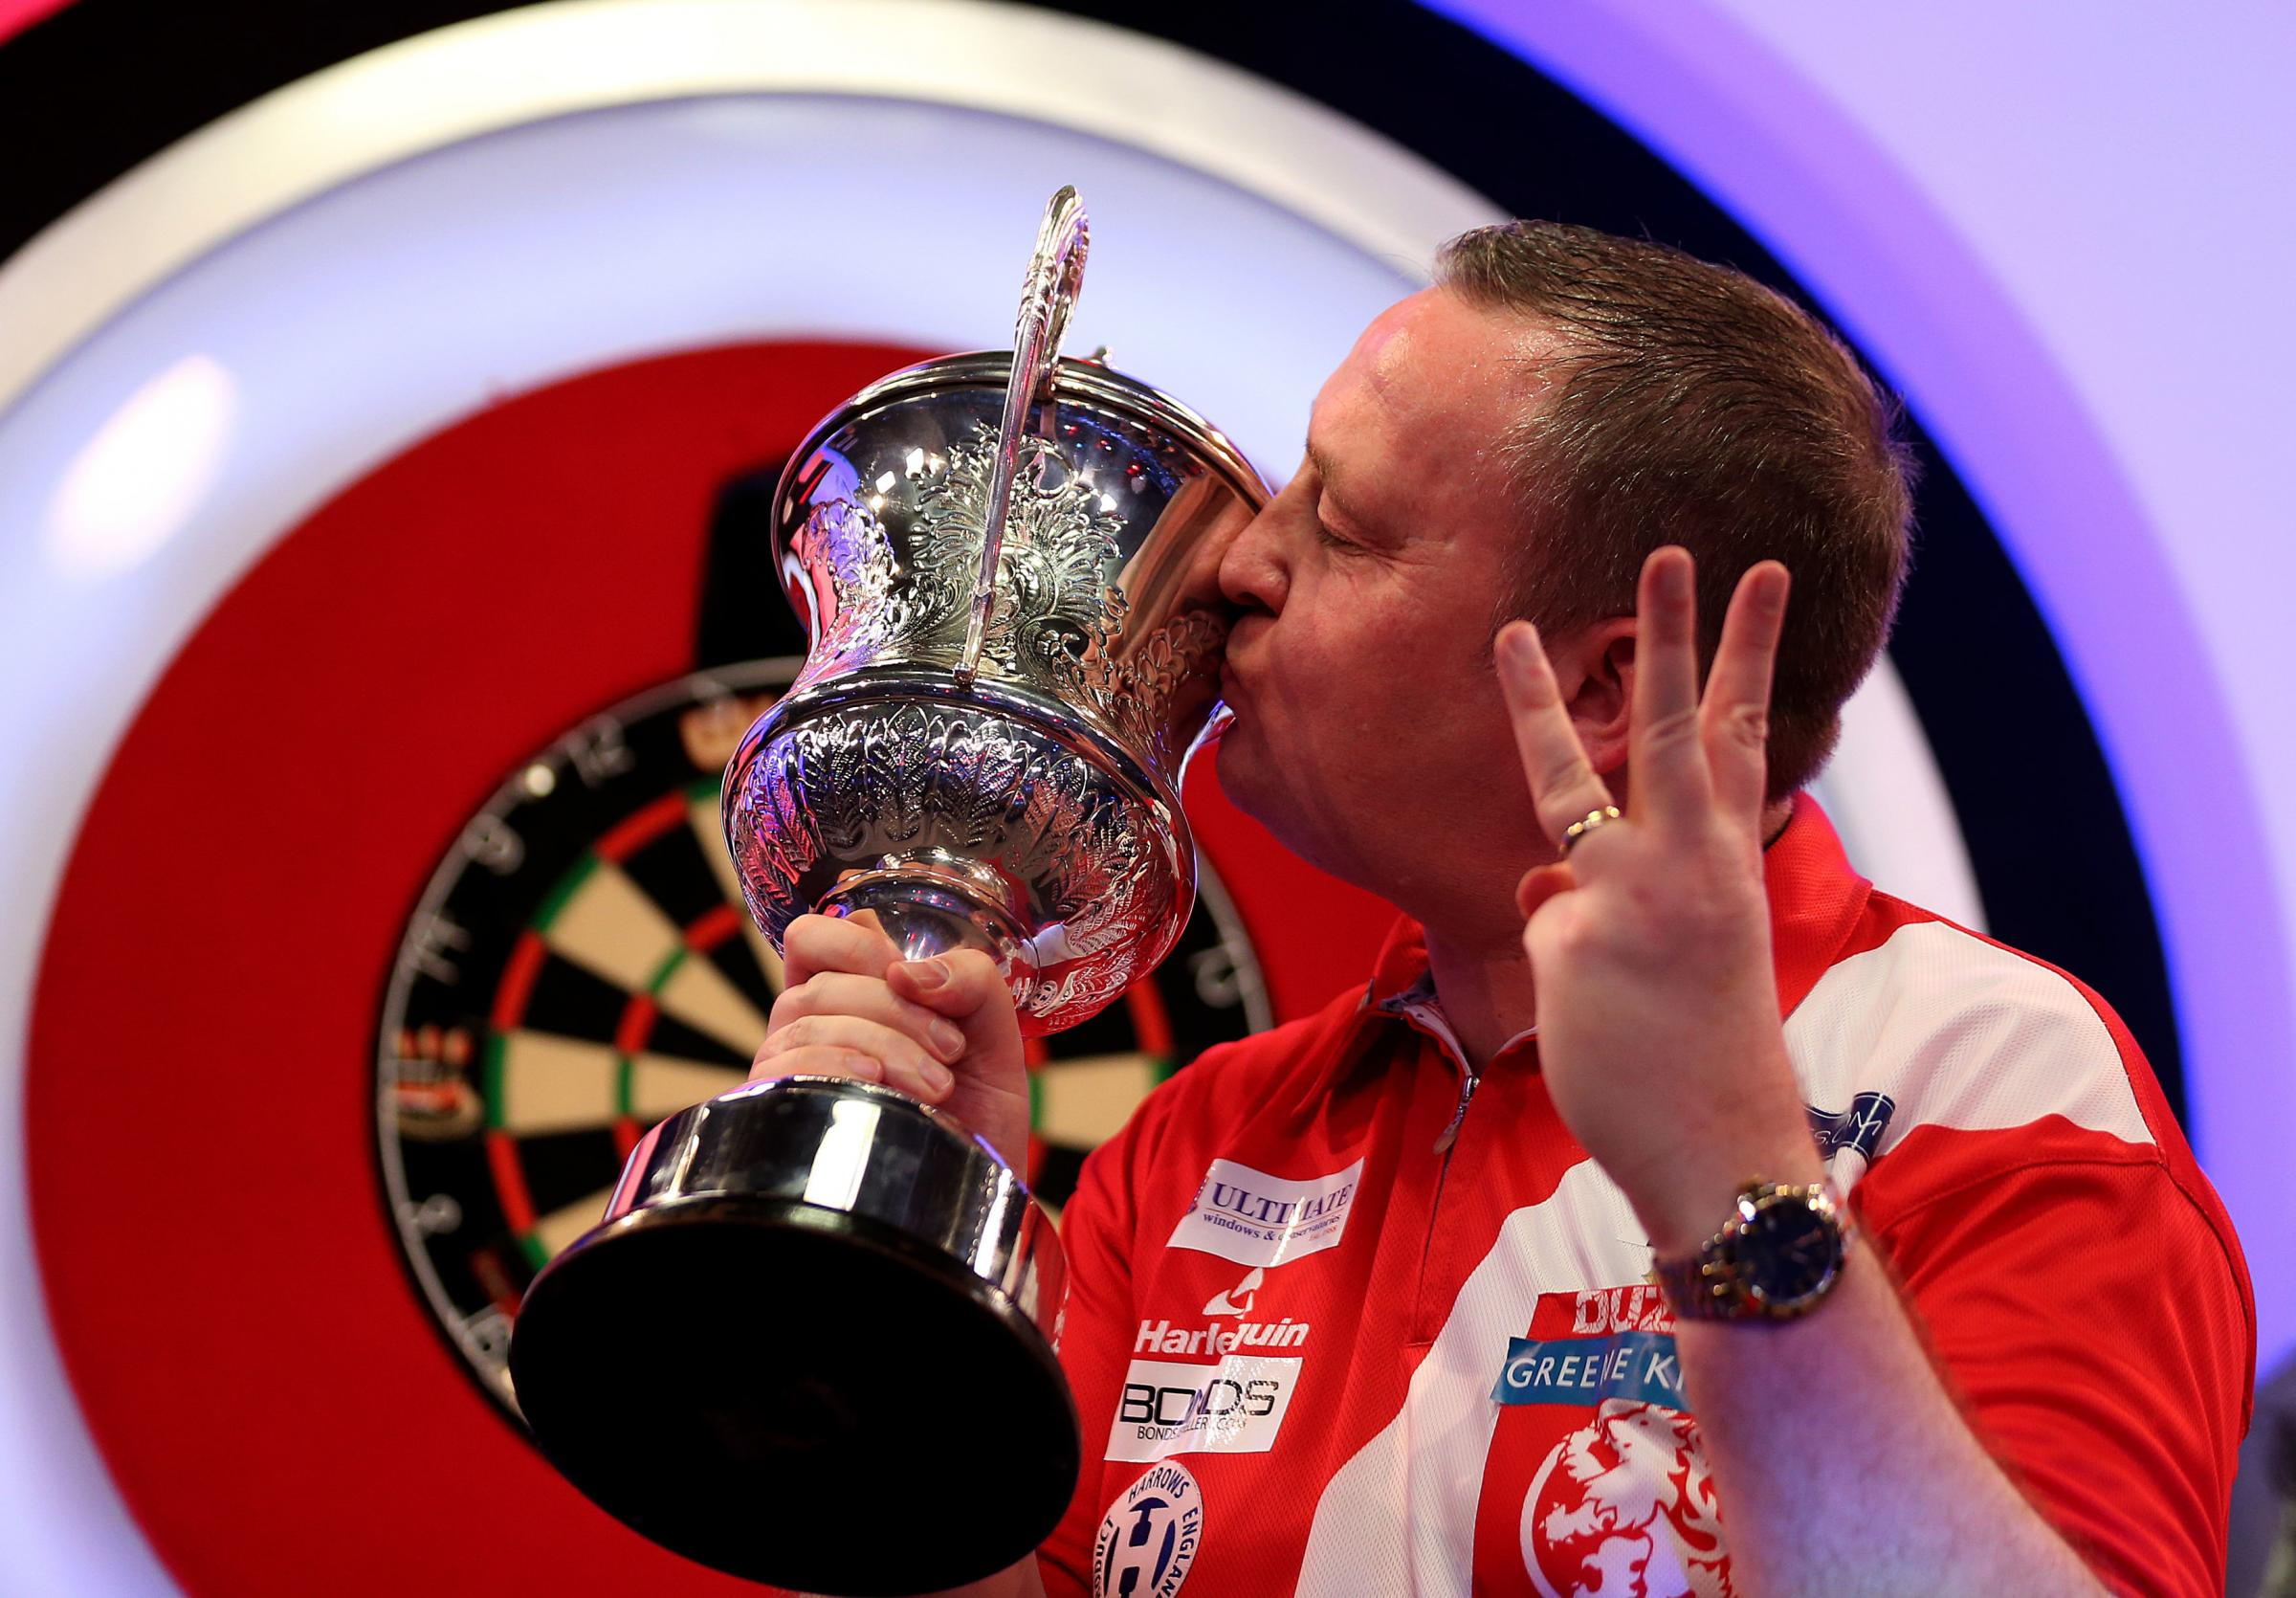 Glen Durrant celebrates winning with the trophy after 3 titles in a row during day nine of the BDO World Professional Darts Championship 2019 at The Lakeside, London. PRESS ASSOCIATION Photo. Picture date: Sunday January 13, 2019. See PA story DARTS Londo